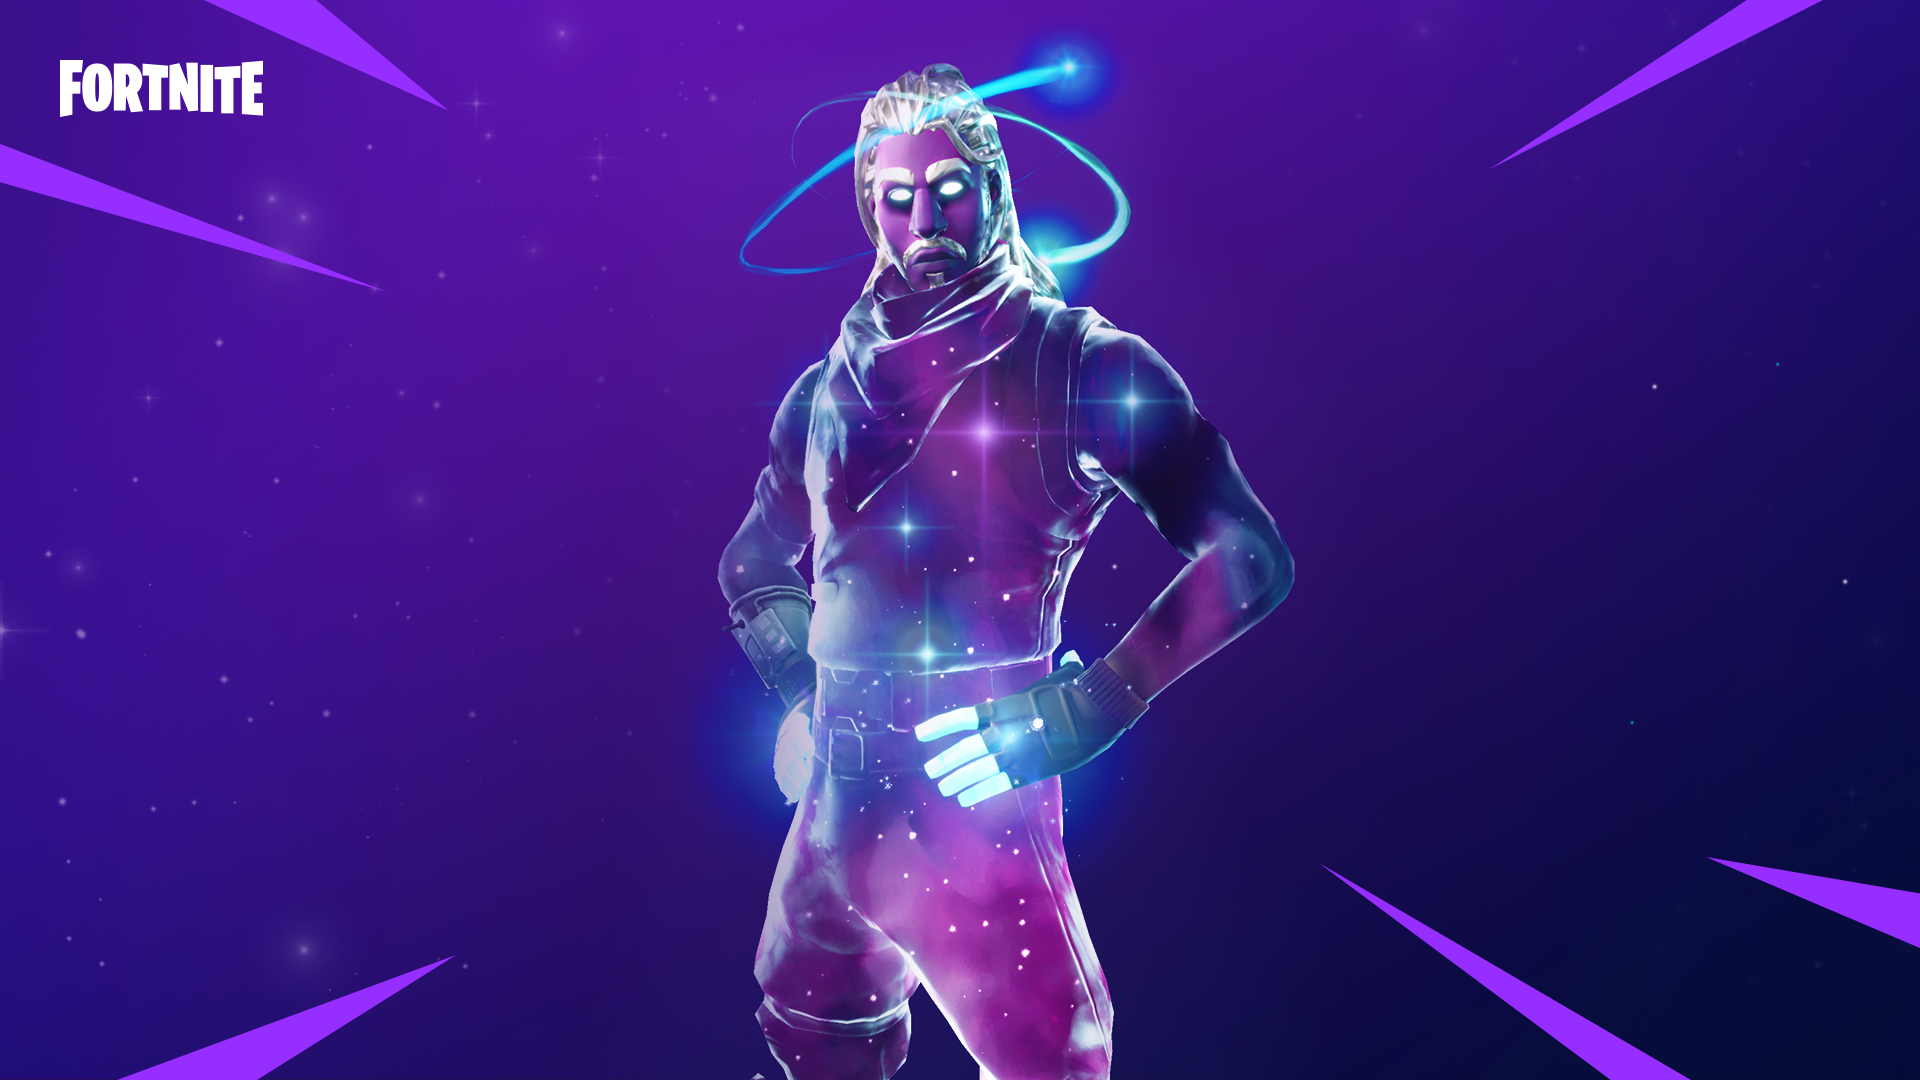 br05 social androidgalaxy png - download fortnite on samsung galaxy